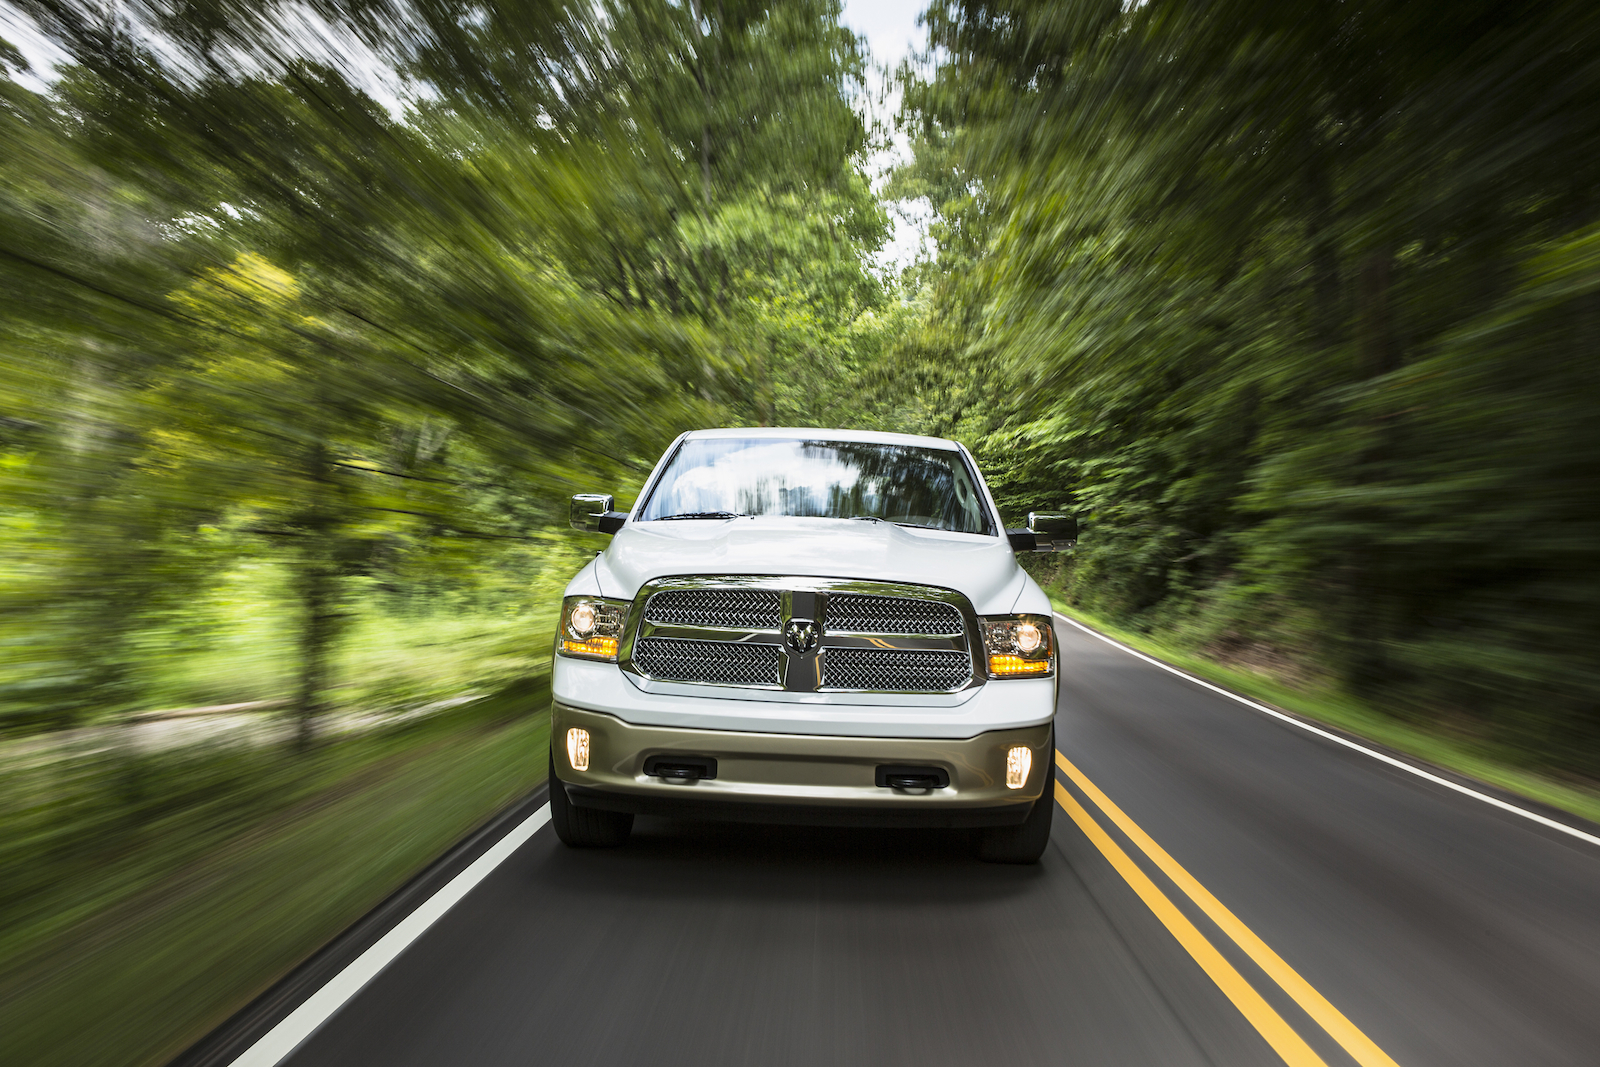 2013 Ram 1500 - image: Chrysler Group LLC